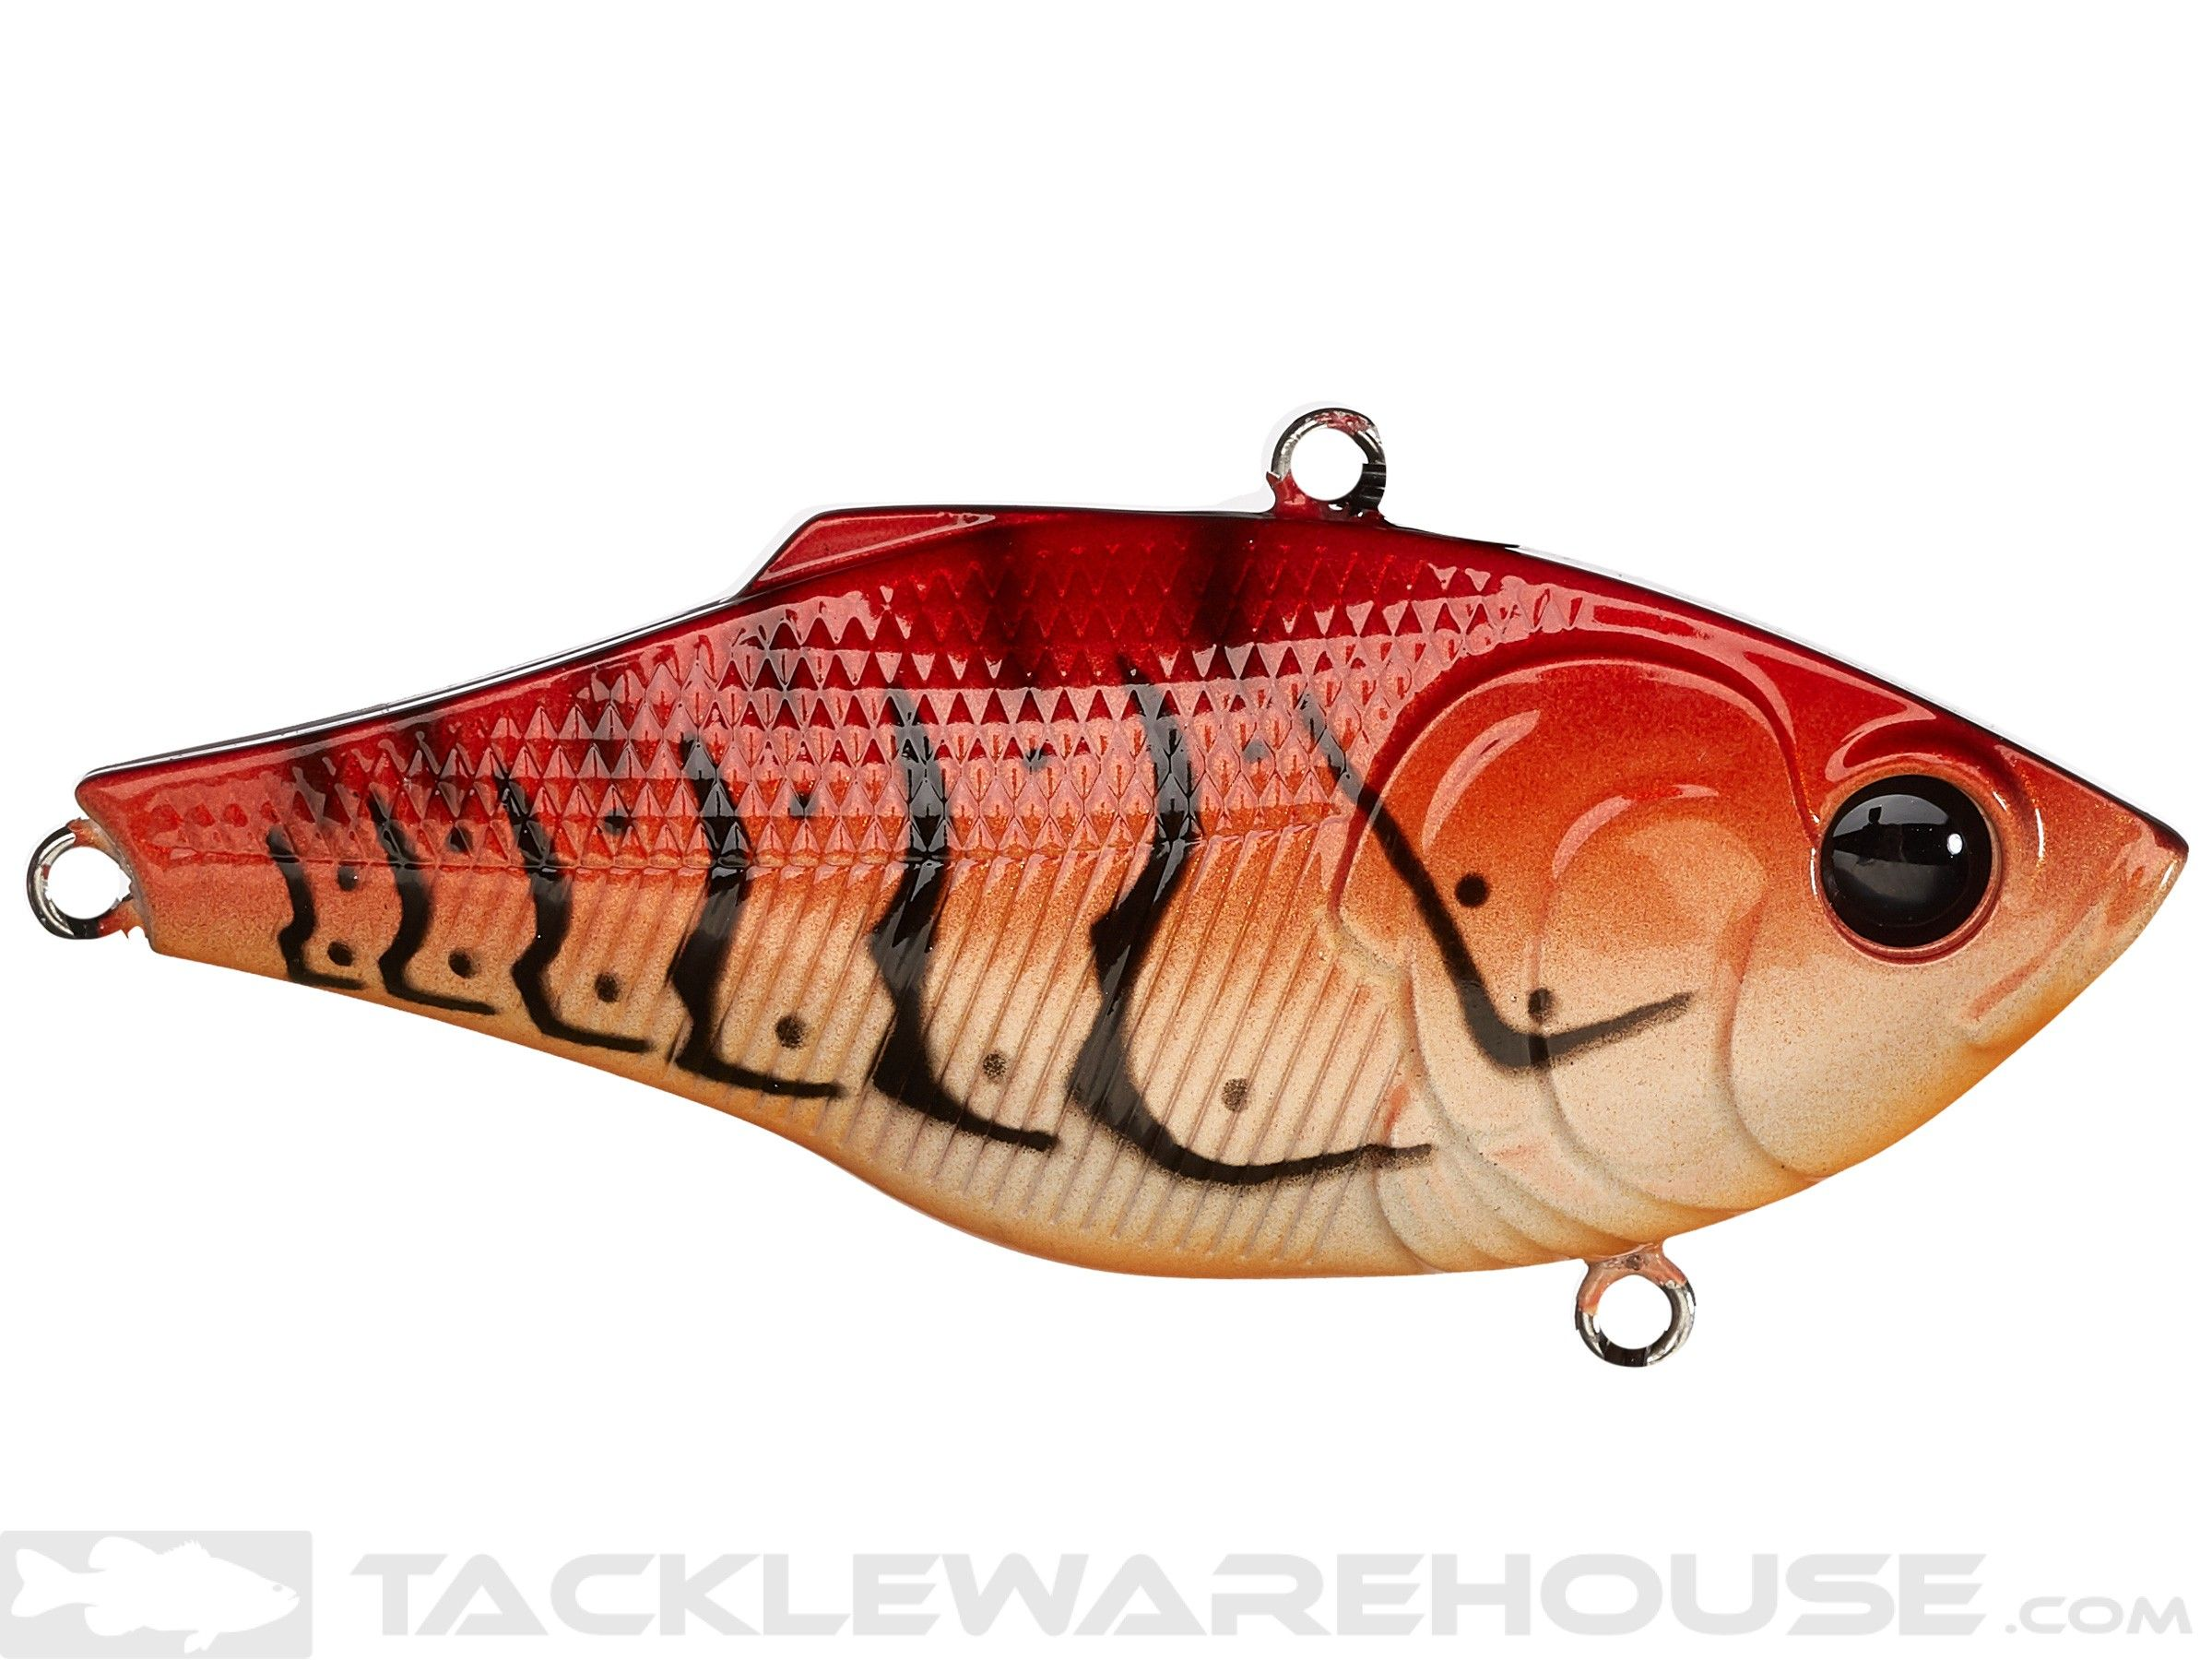 how to fish a crankbait from shore